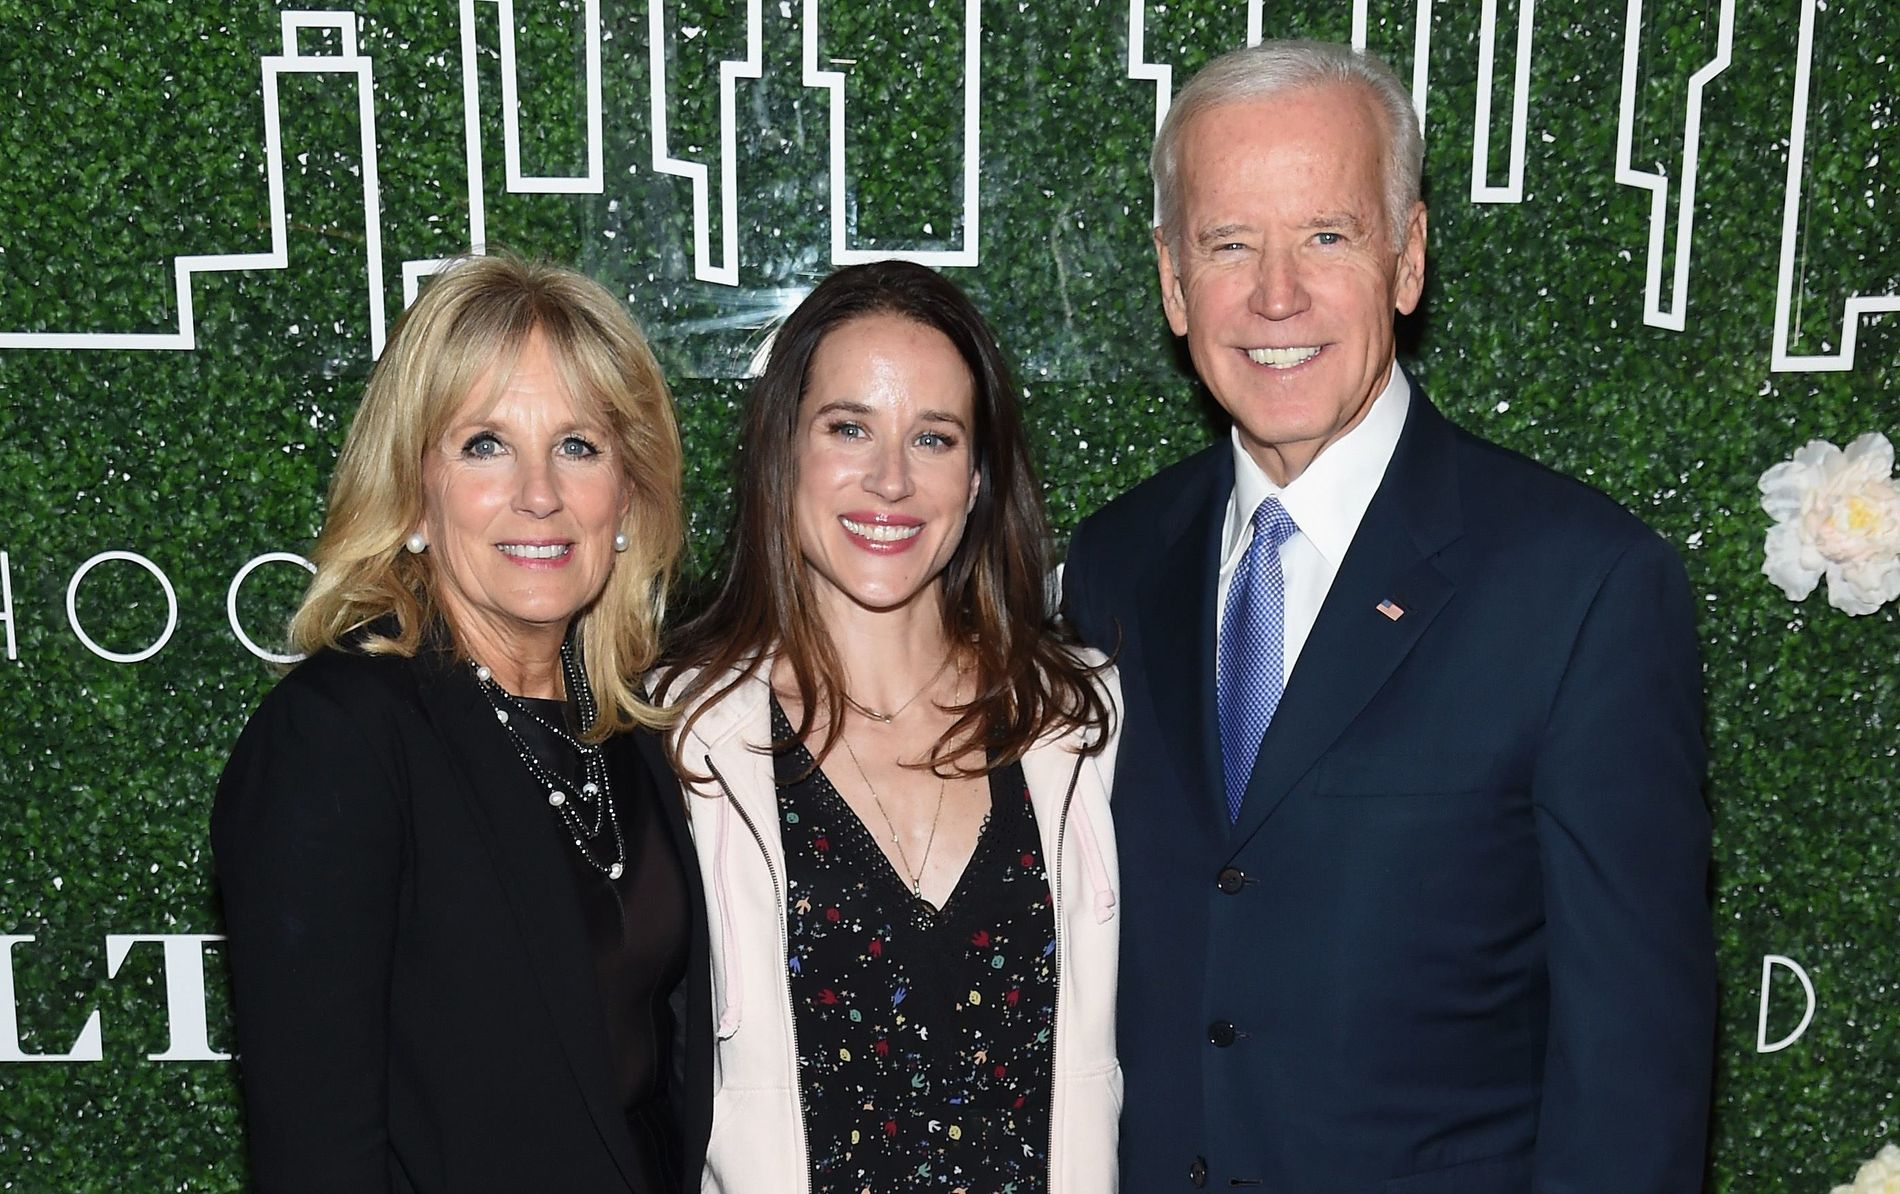 FEIRET: Jill Biden, Livelihood-gründer Ashley Biden og Joe Biden på lanseringen av Livelihood Collection på Spring Place i New York tirsdag kveld.